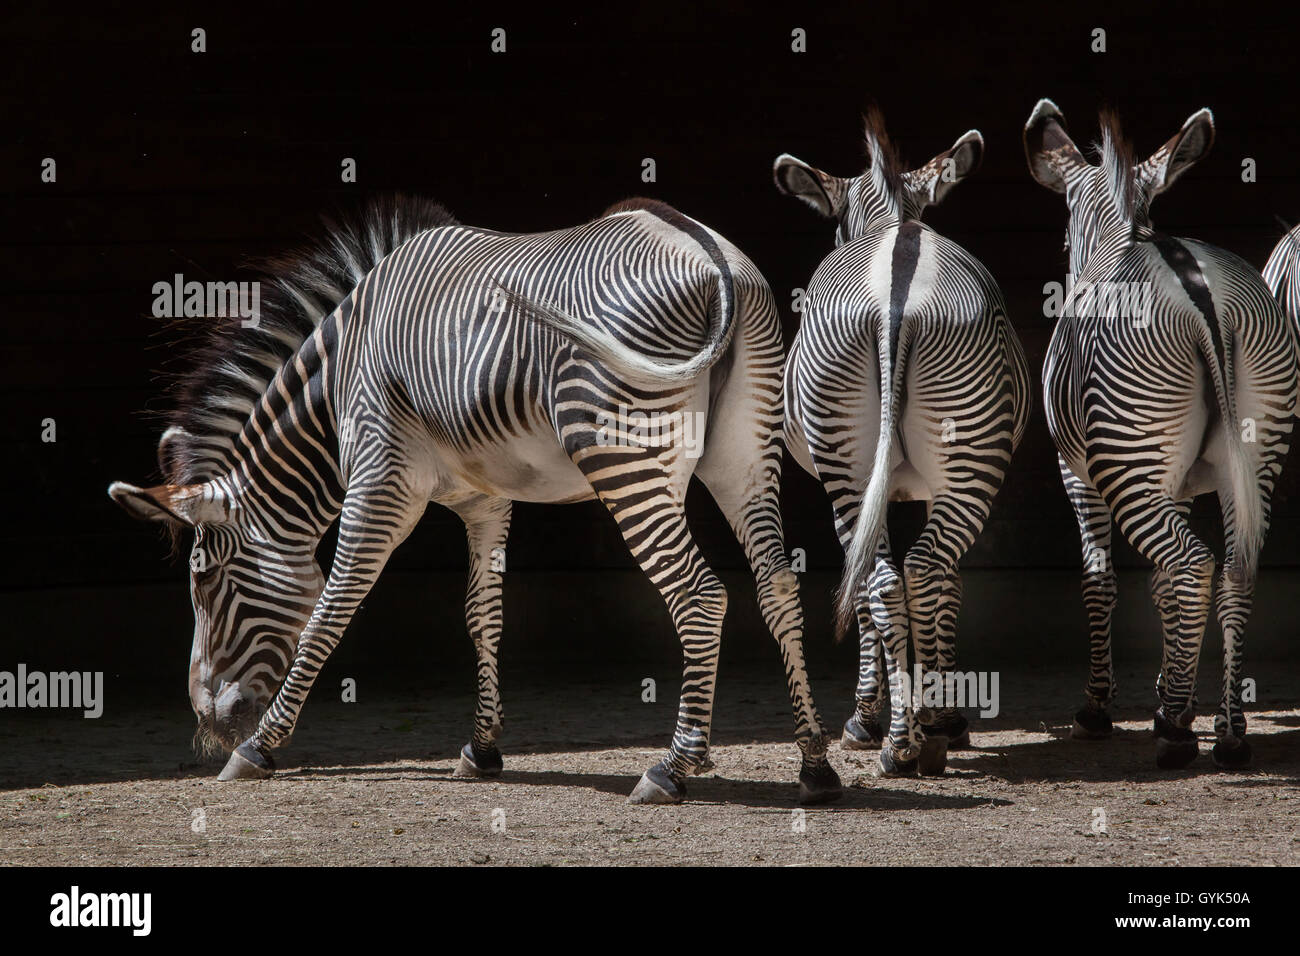 Grevy's zebra (Equus grevyi), also known as the imperial zebra at Augsburg Zoo in Bavaria, Germany. Stock Photo